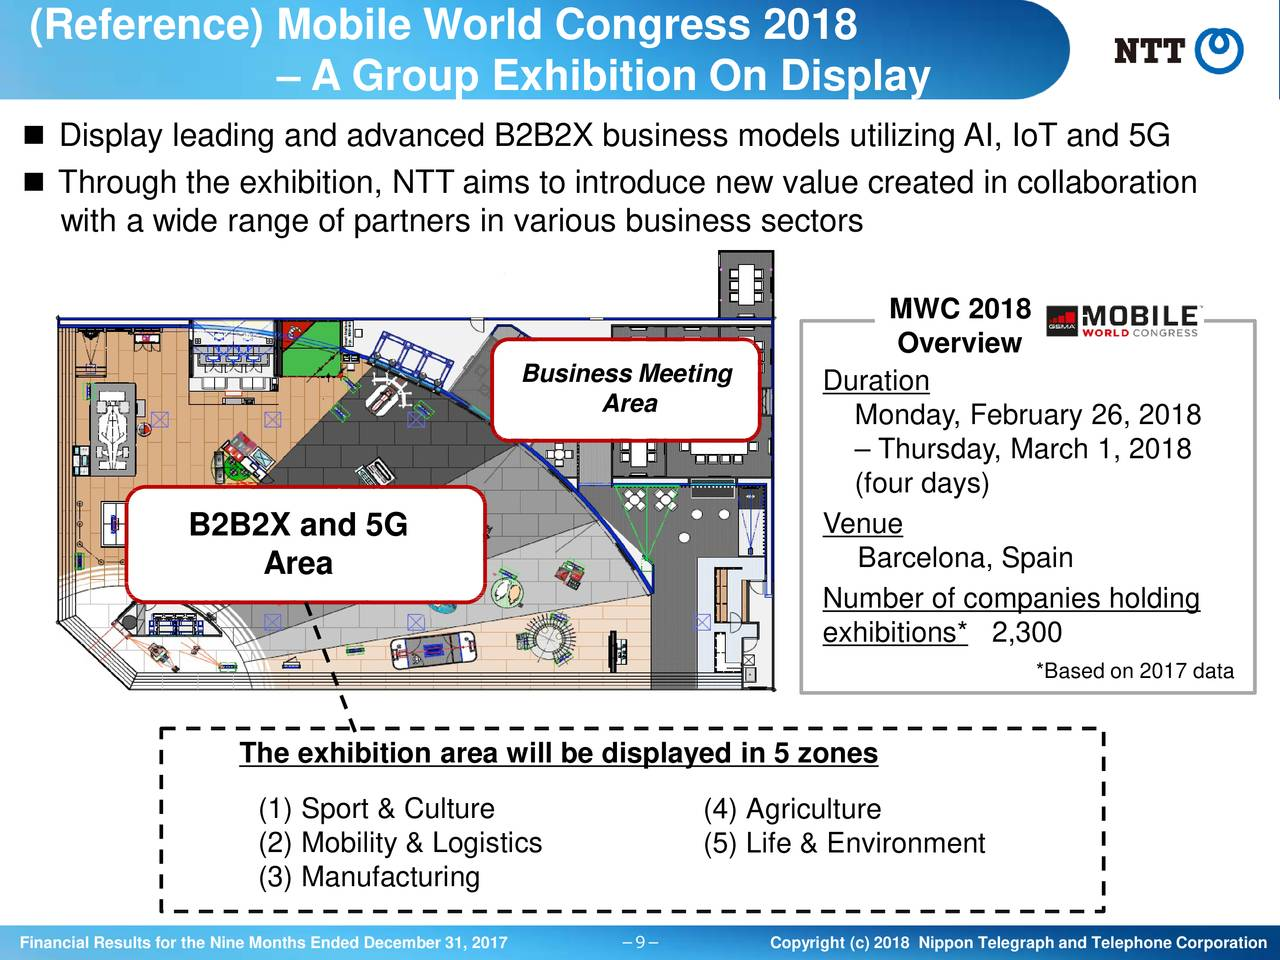 Overview: Thursday at Mobile World Congress